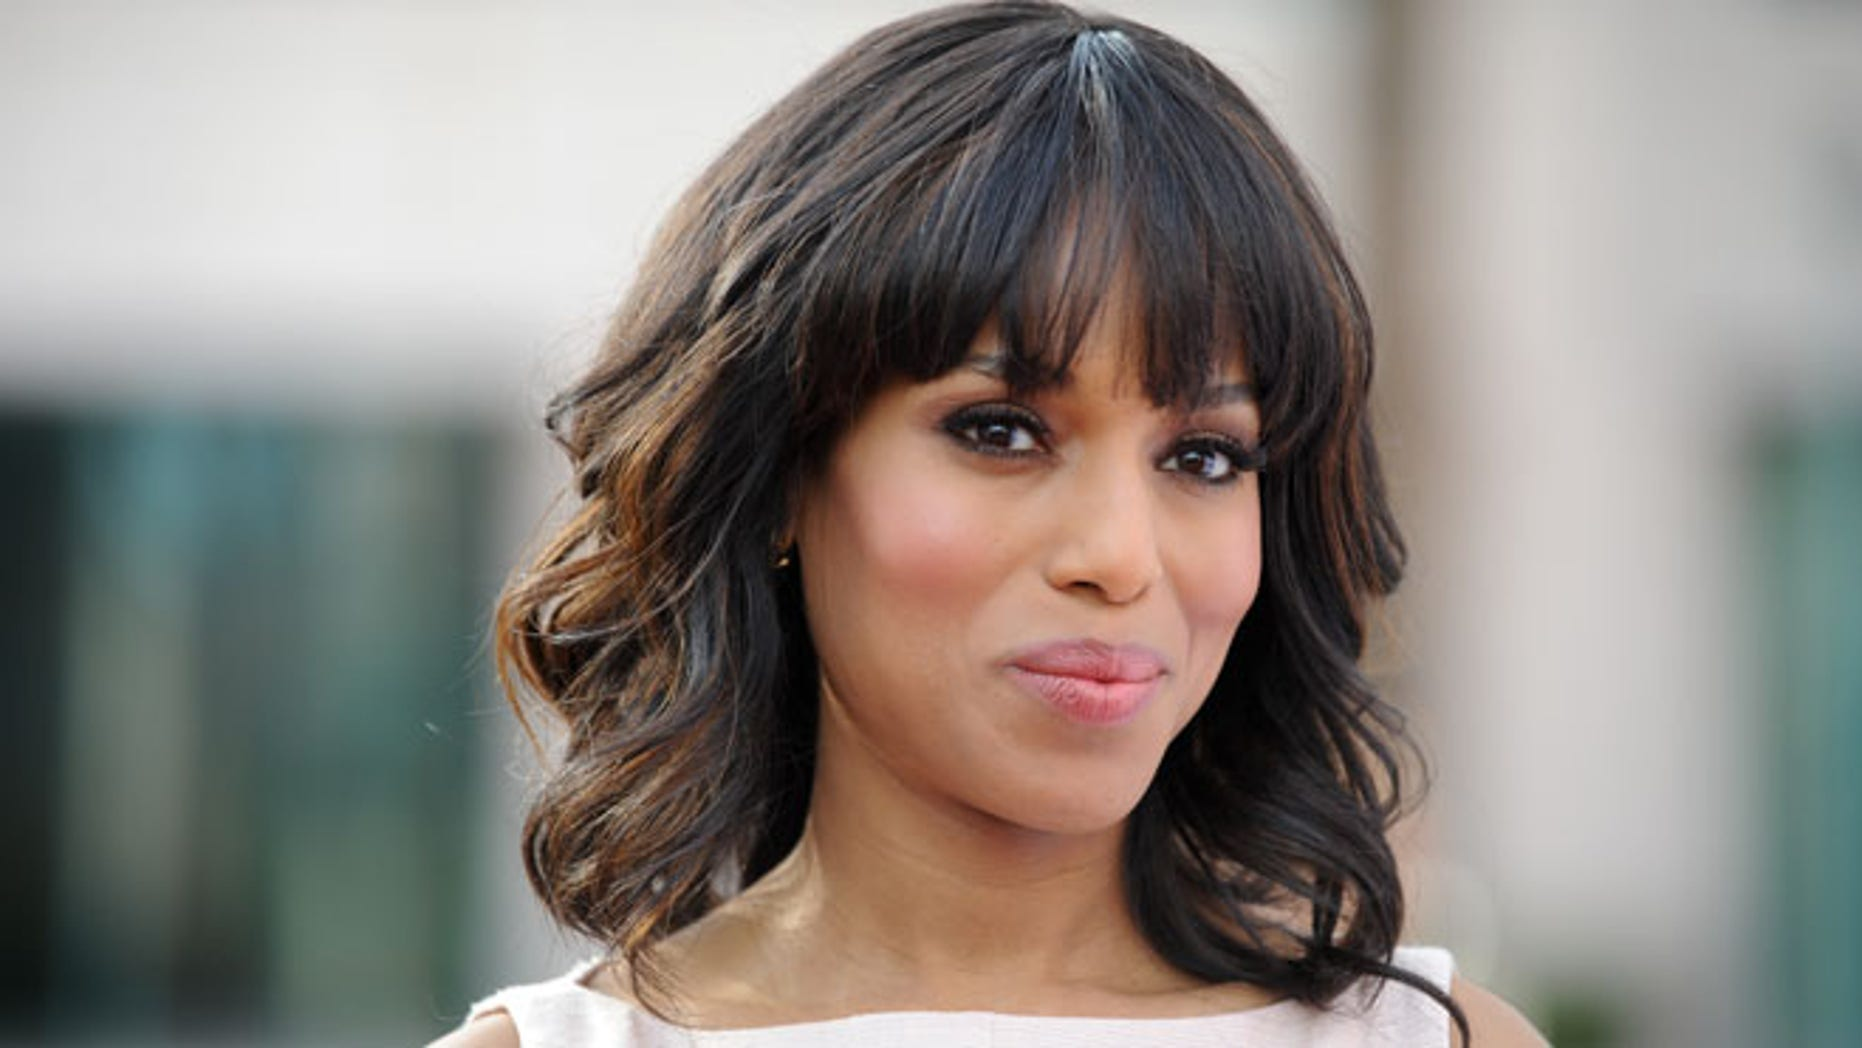 May 16, 2013: This photo shows actress Kerry Washington at the Academy of Television Art and Sciences' event in North Hollywood, Calif.